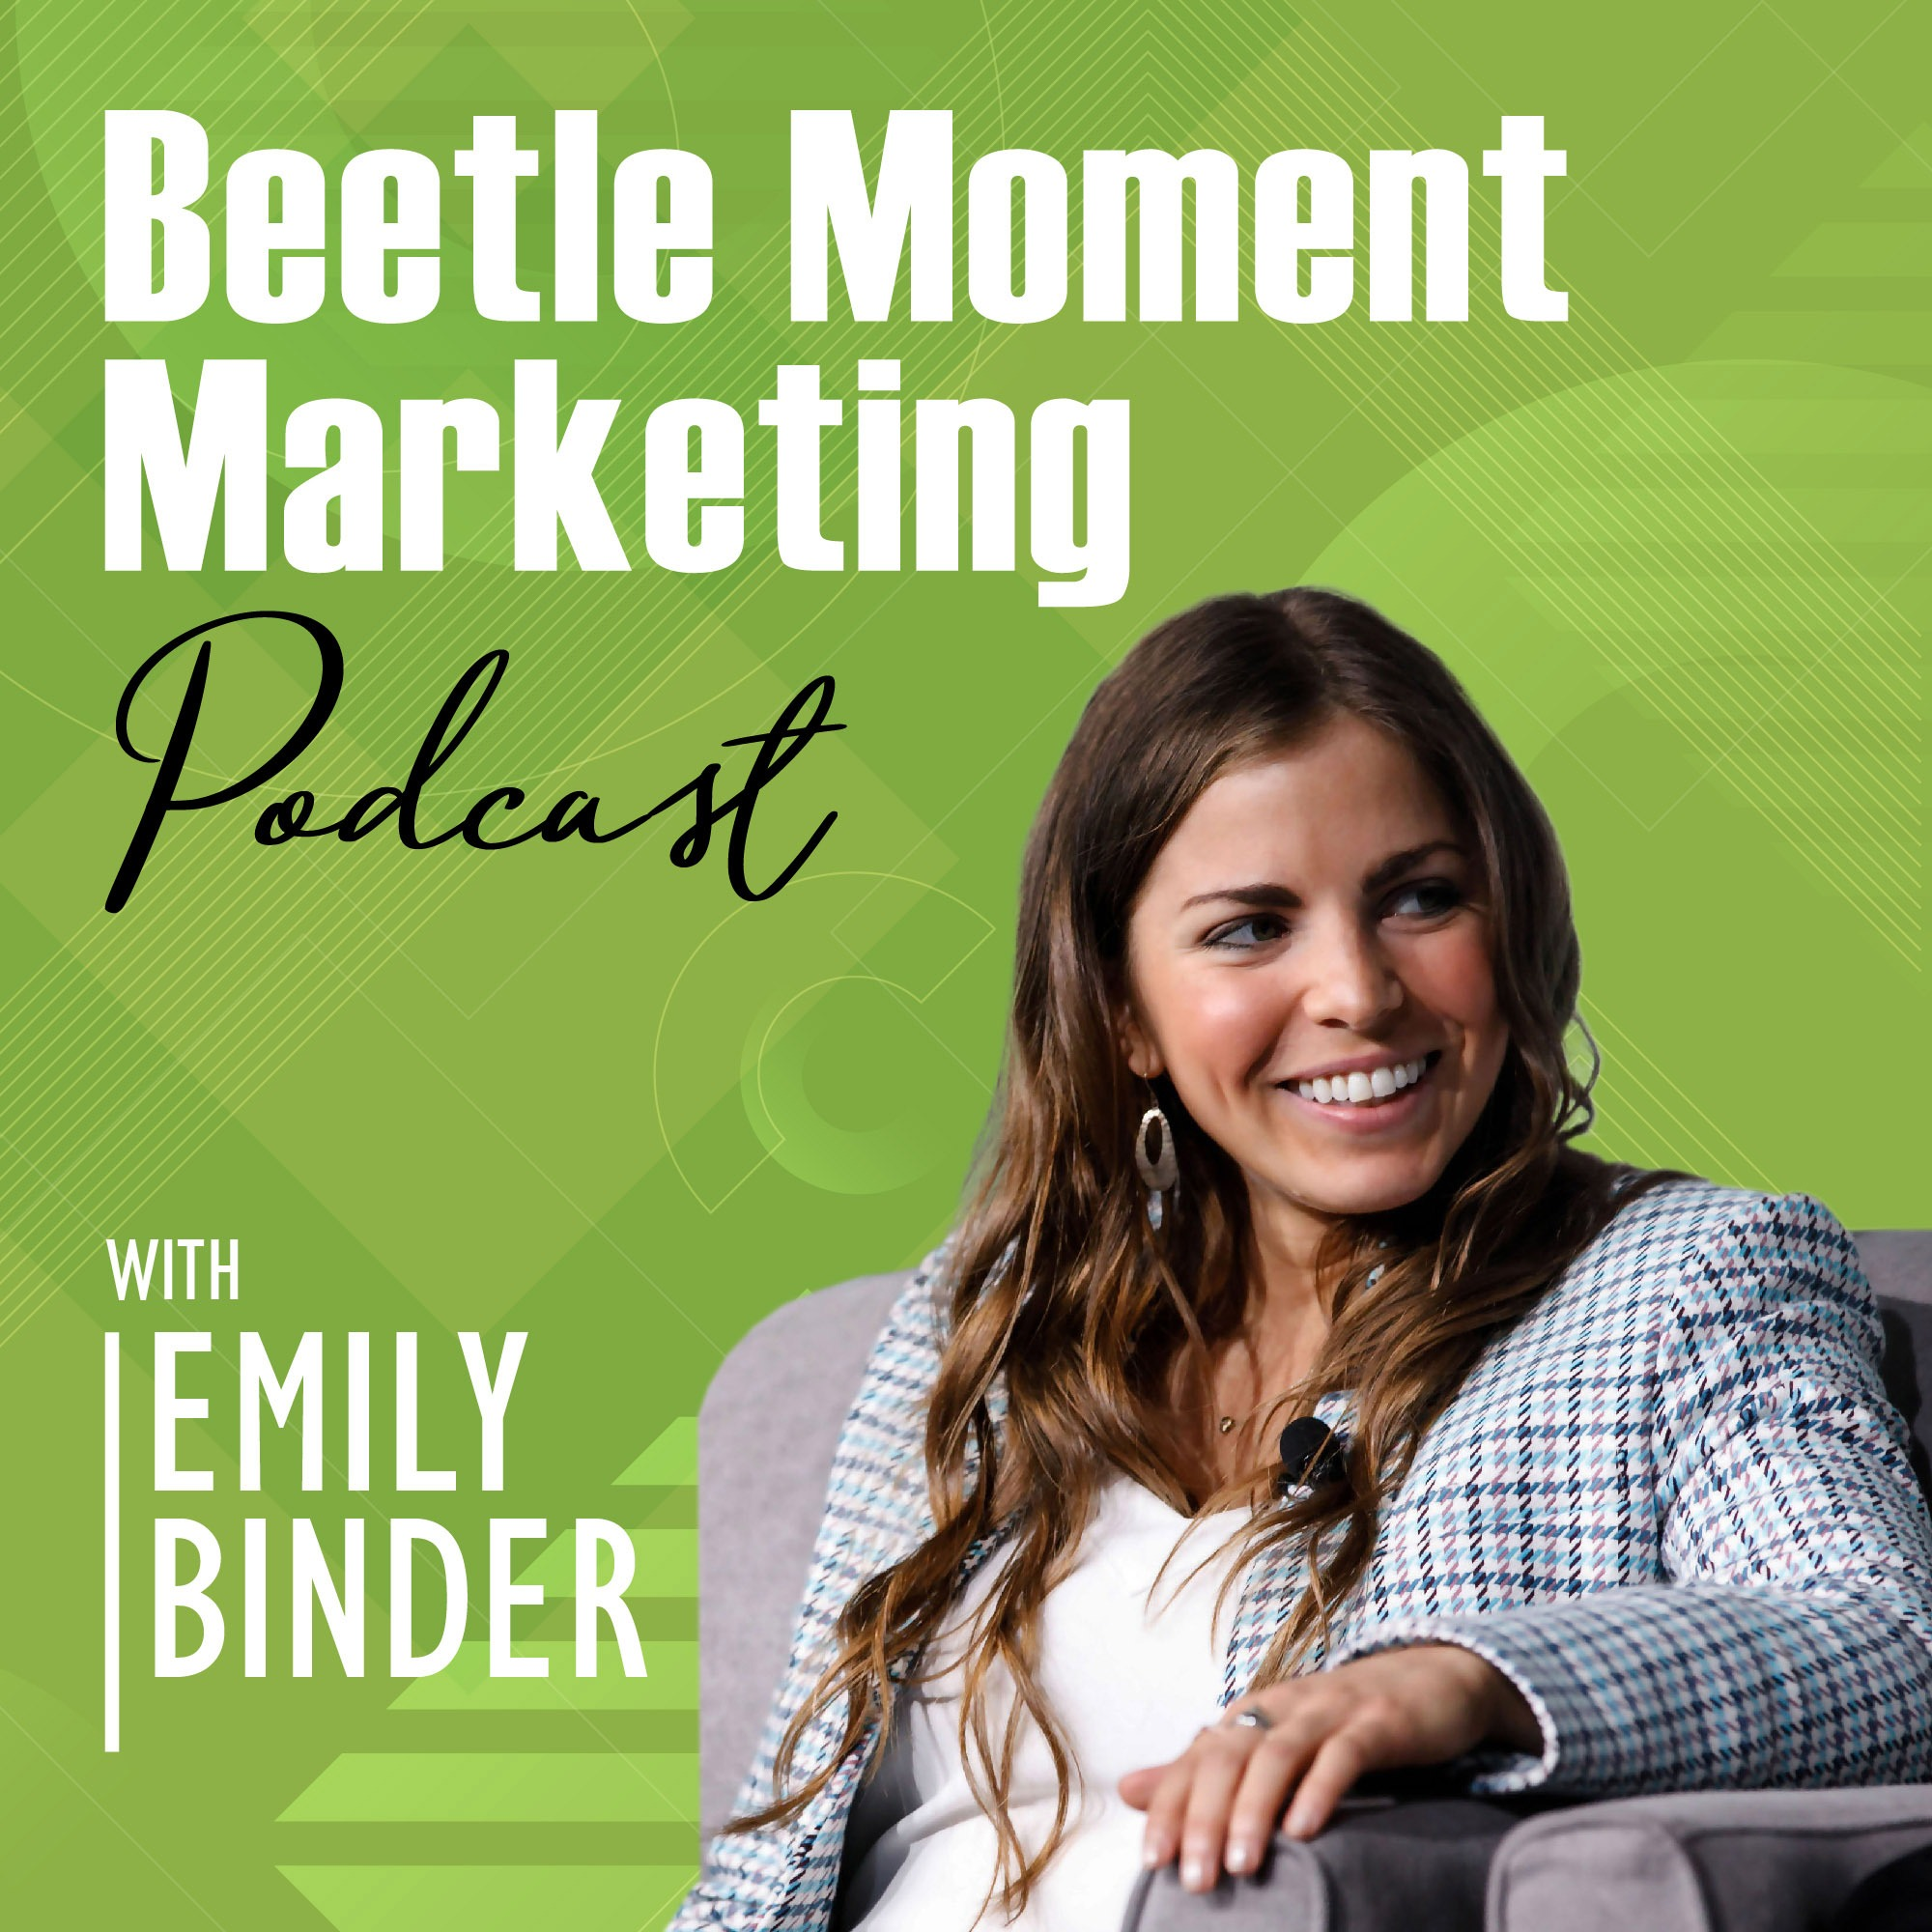 Beetle Moment Marketing Podcast podcast show image